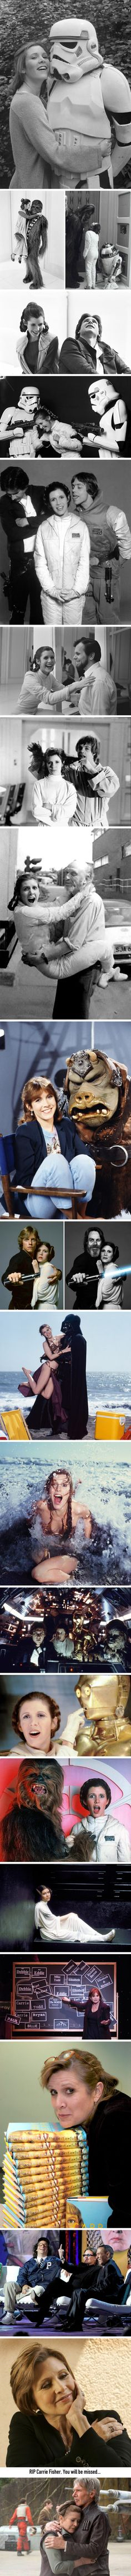 Photos of Carrie Fisher. Other than my mom, she was my first heroine. Her portrayal of Princess Leia was strong, smart, and tender. Leia was a badass. Star Wars Film, Star Trek, Star Wars Rebels, Star Wars Art, Carrie Fisher, Starwars, Geeks, Kampfstern Galactica, Humour Geek